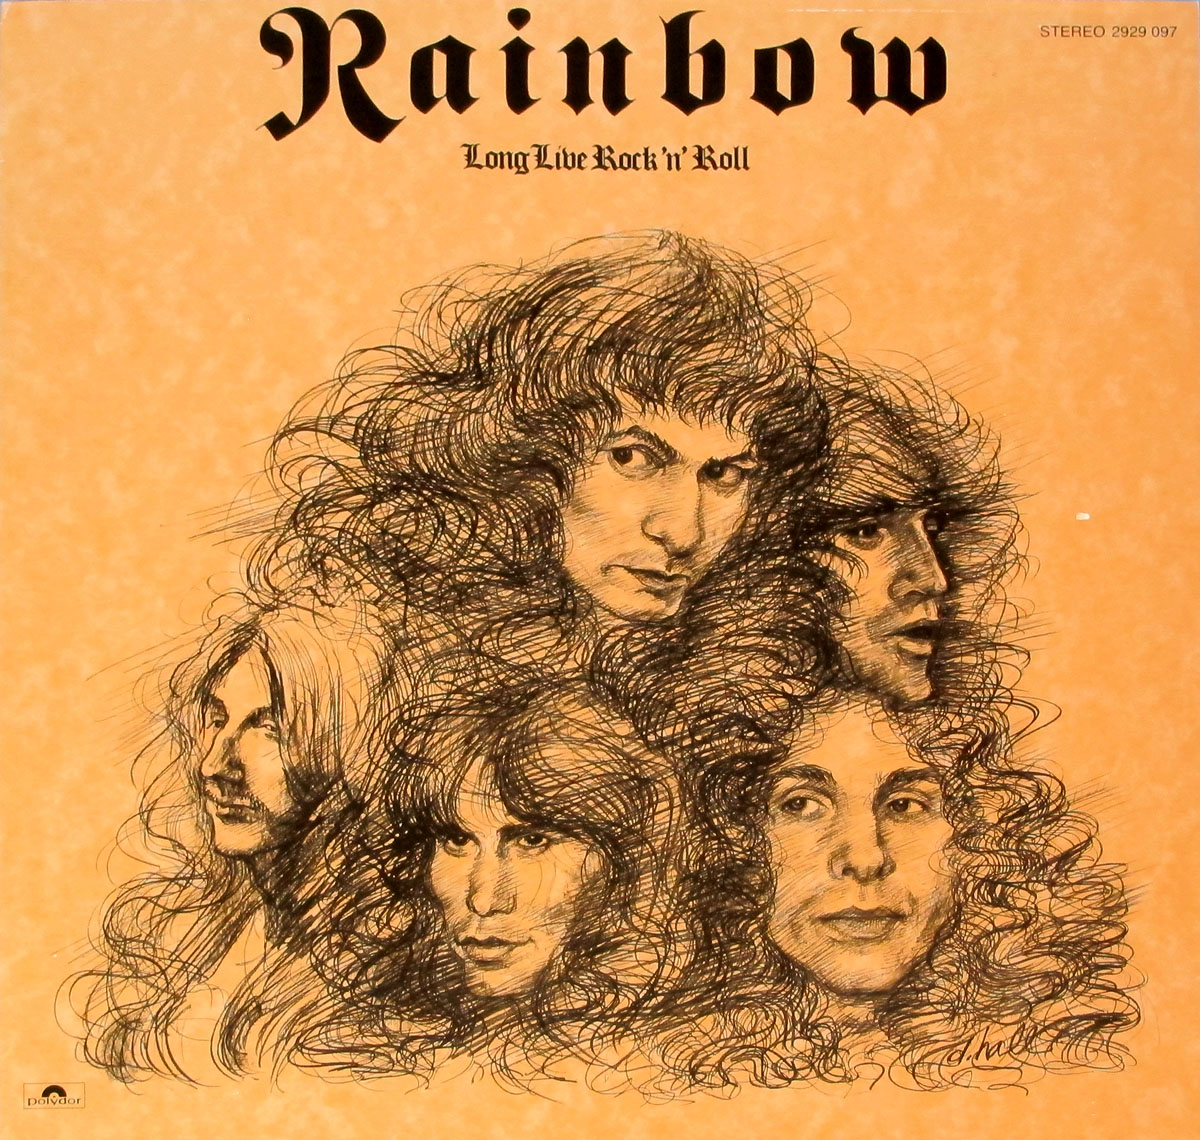 High Resolution Photos of rainbow long live rock roll 2929 097